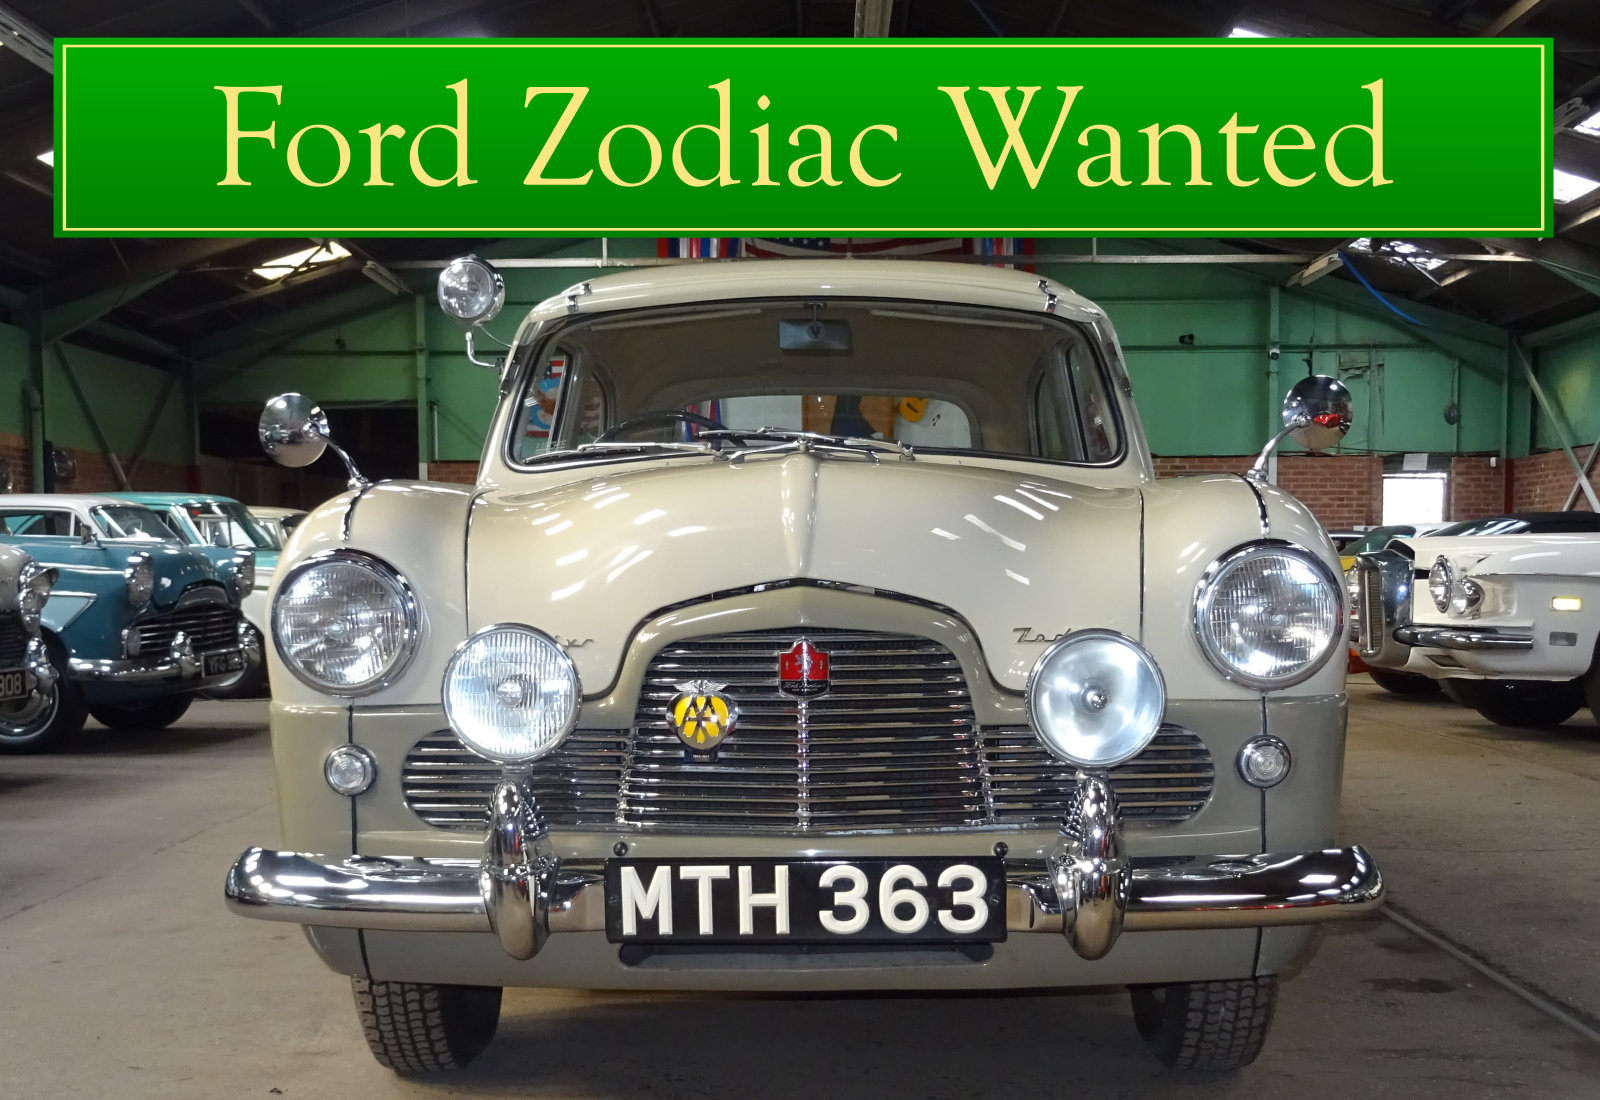 FORD ZEPHYR WANTED, CLASSIC CARS WANTED, IMMEDIATE PAYMENT Wanted (picture 2 of 6)